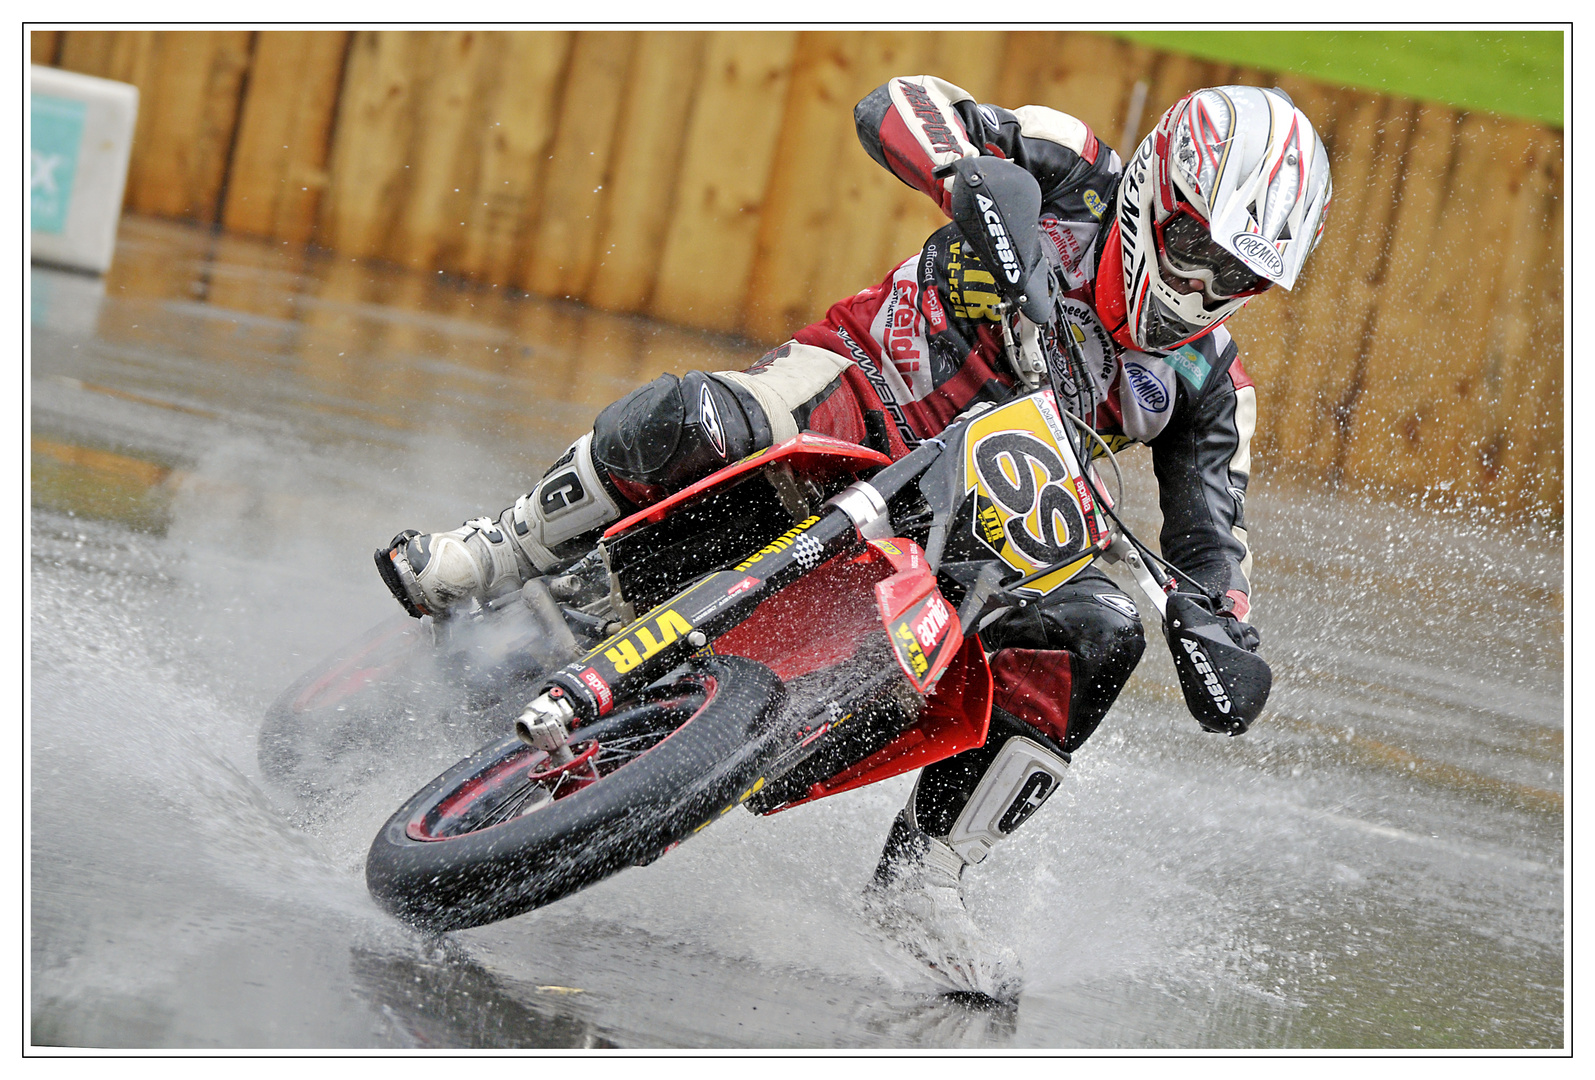 Grip im Regen - Supermoto 2010